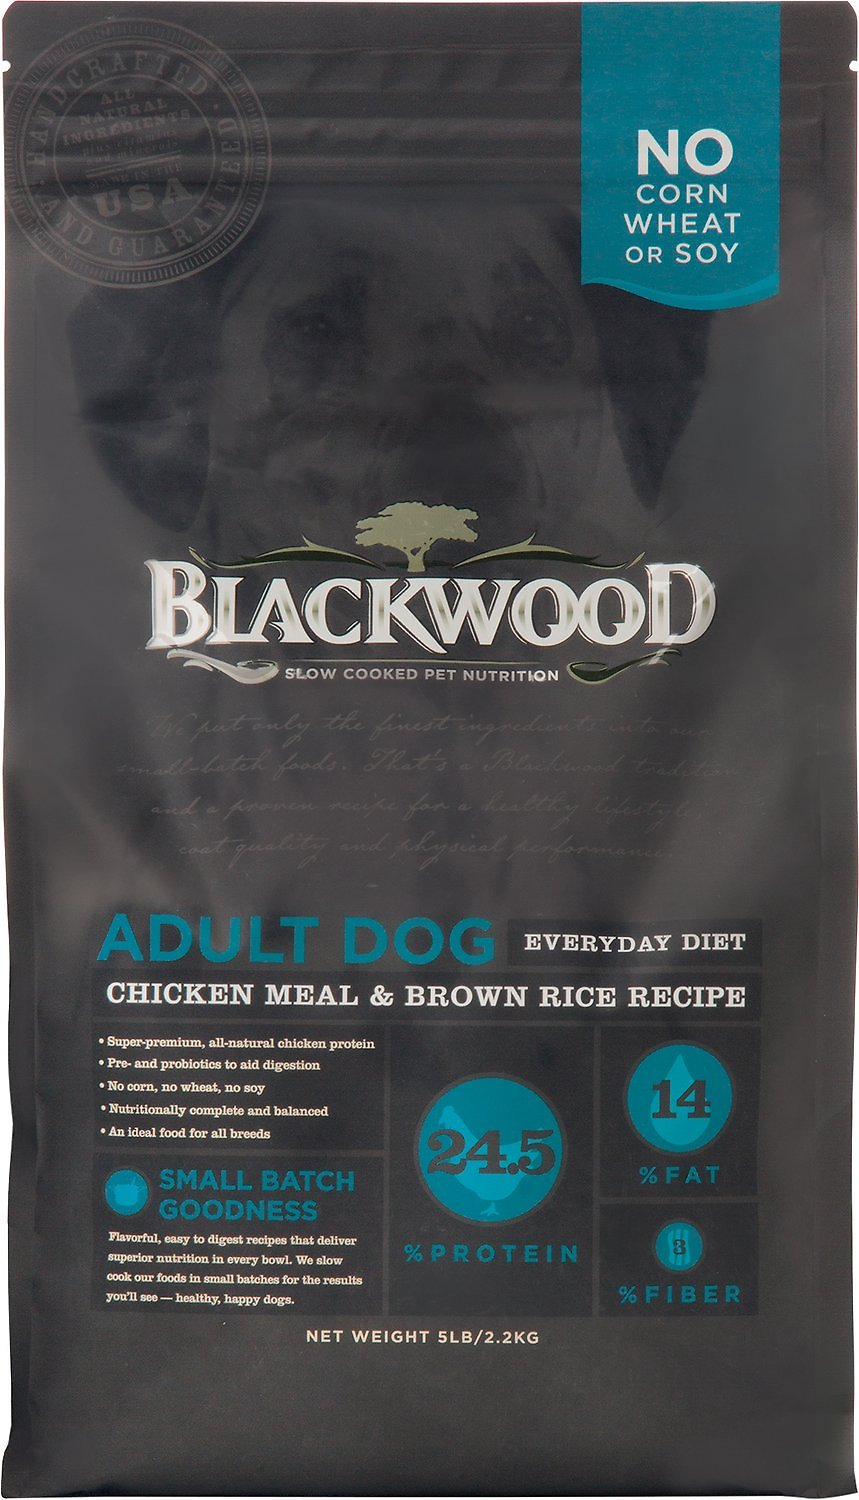 Blackwood chicken meal rice recipe everyday diet adult dry dog video forumfinder Choice Image